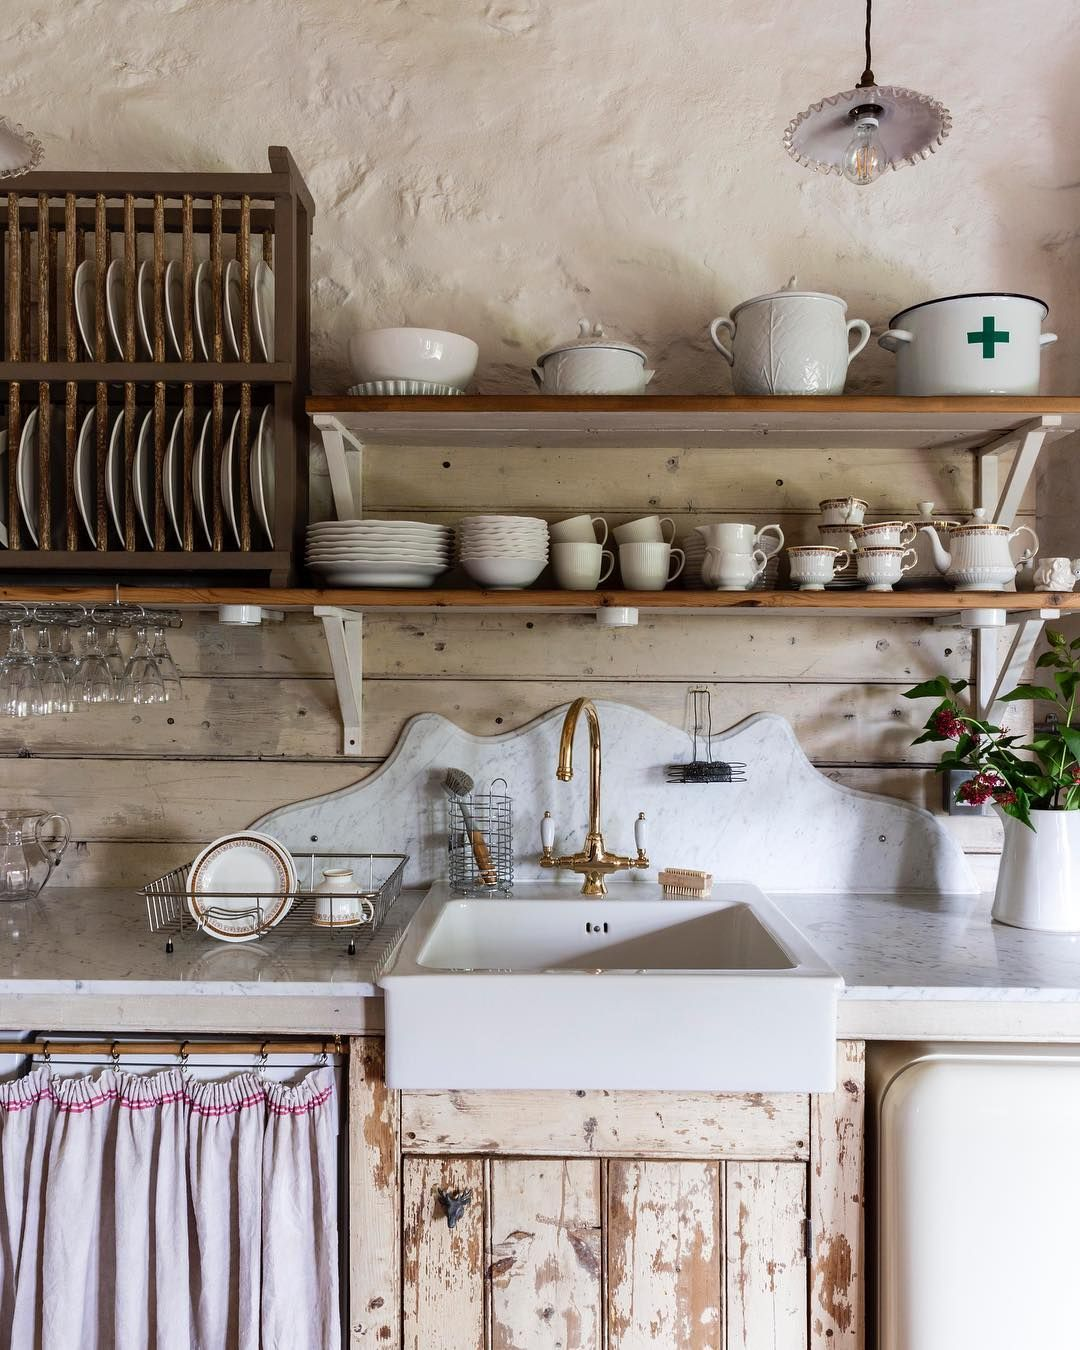 Cucina Interior Design Rustic Charming Rustic Kitchen Emmalewisphotographer I Love Charming